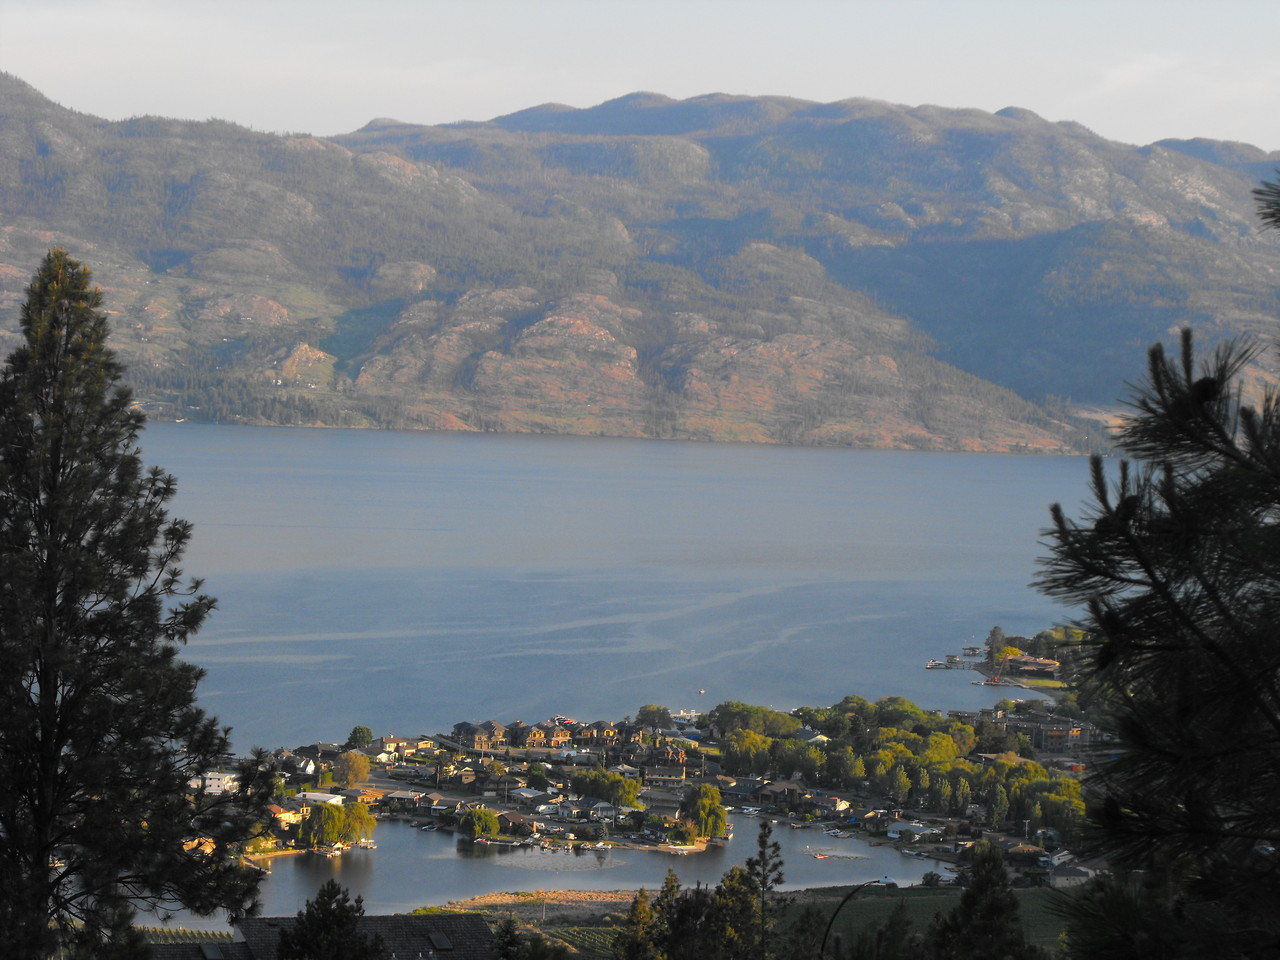 View over Green Bay and Okanagan Lake.